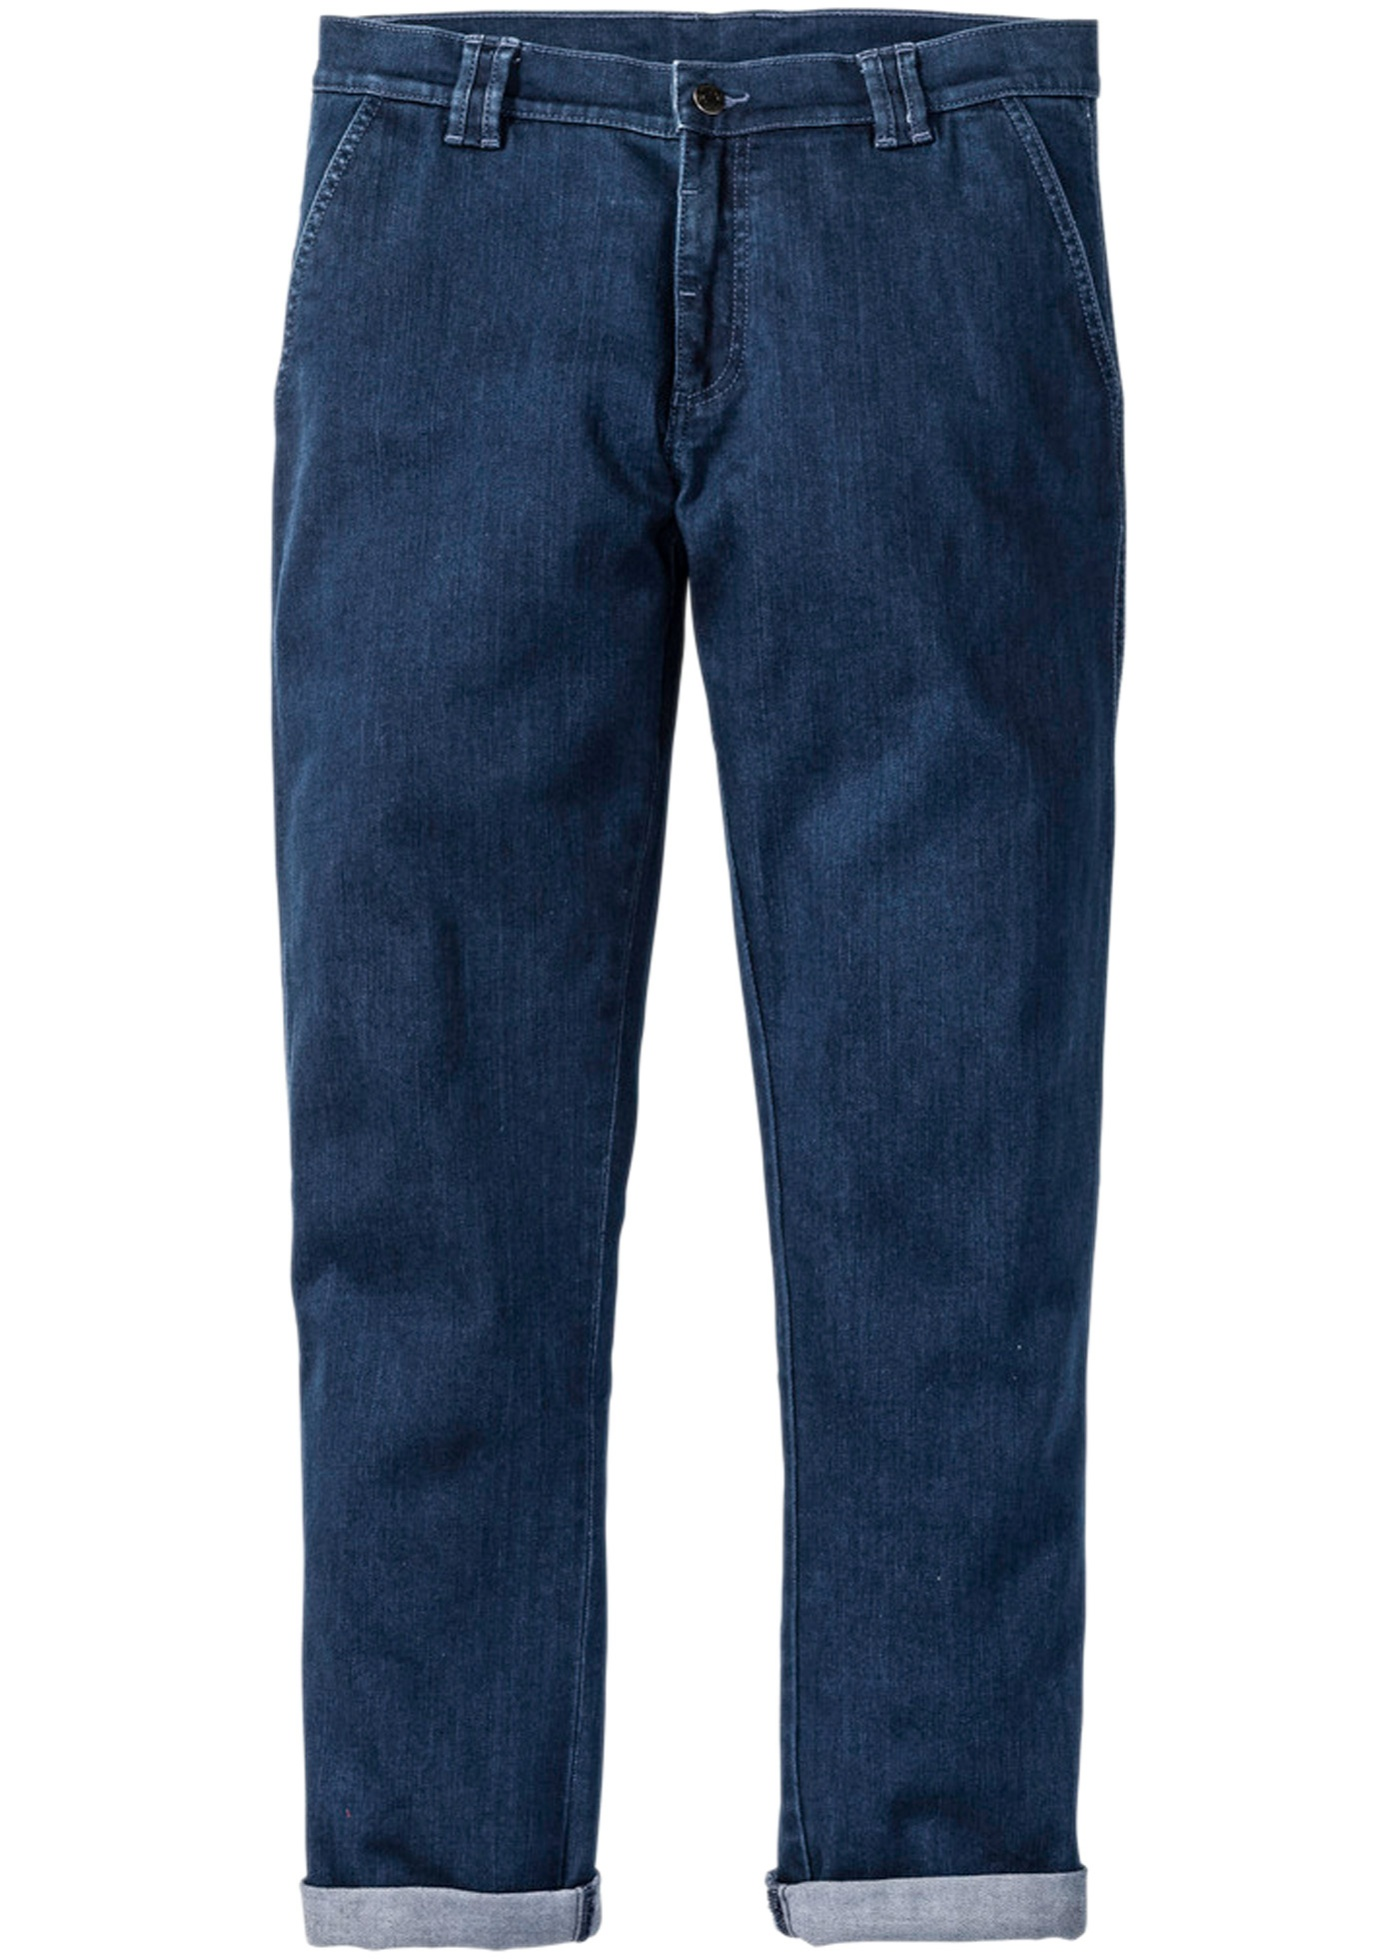 Jeans chino in Coolmax re